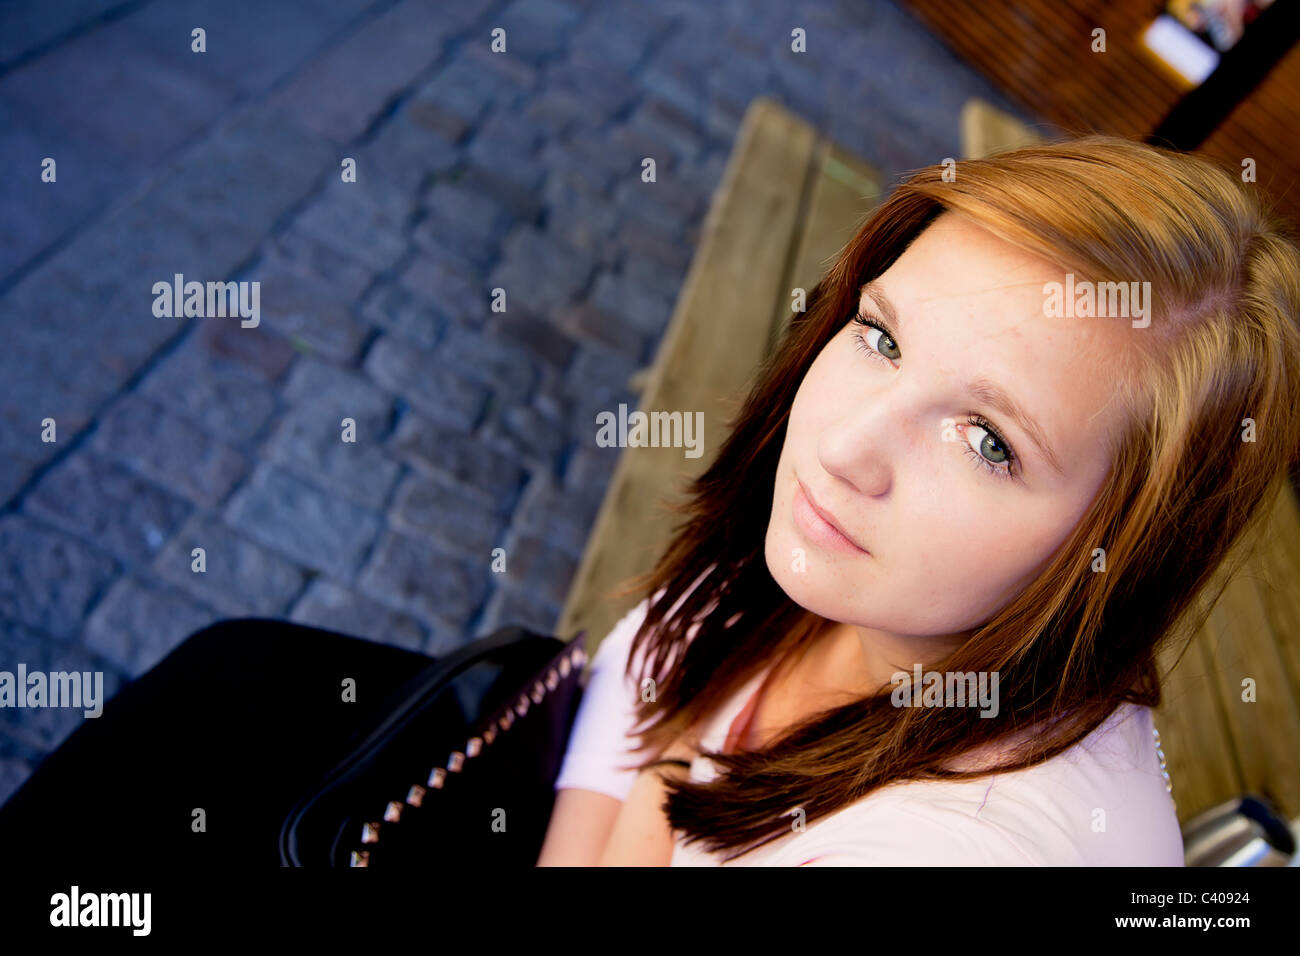 Teenage girl sitting down looking into camera - Stock Image